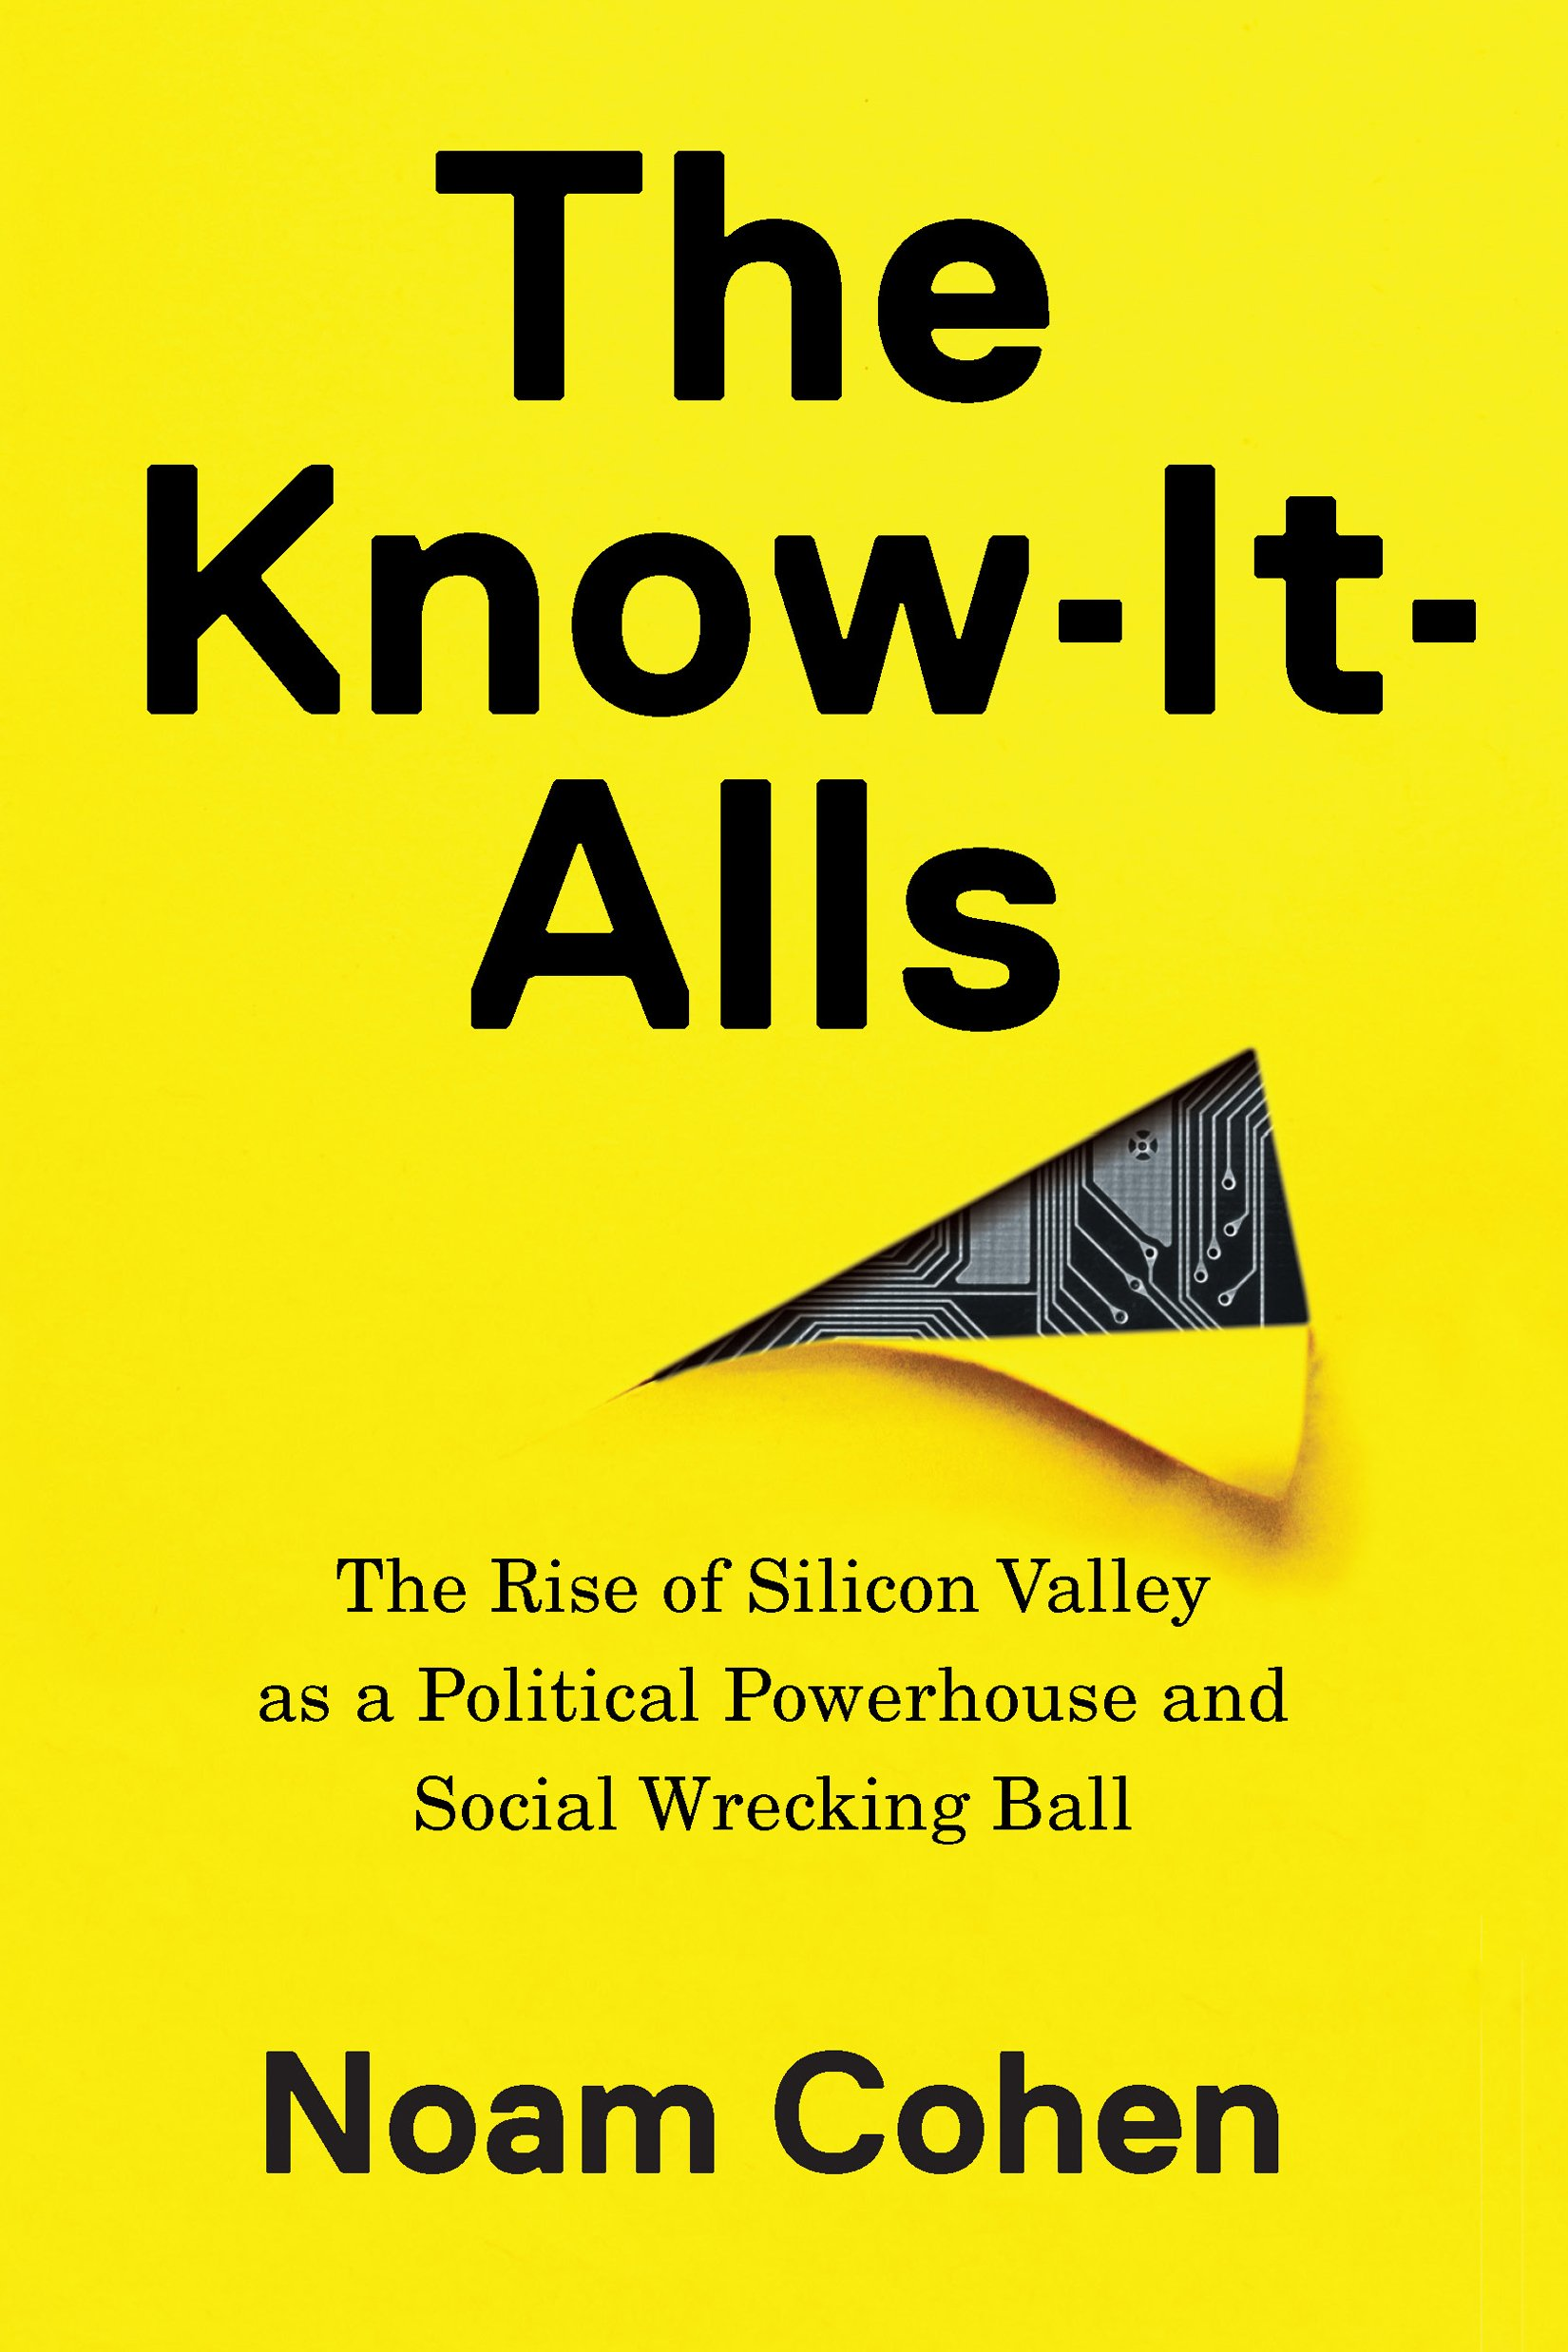 """The cover of """"The Know-It-Alls"""" by Noam Cohen"""